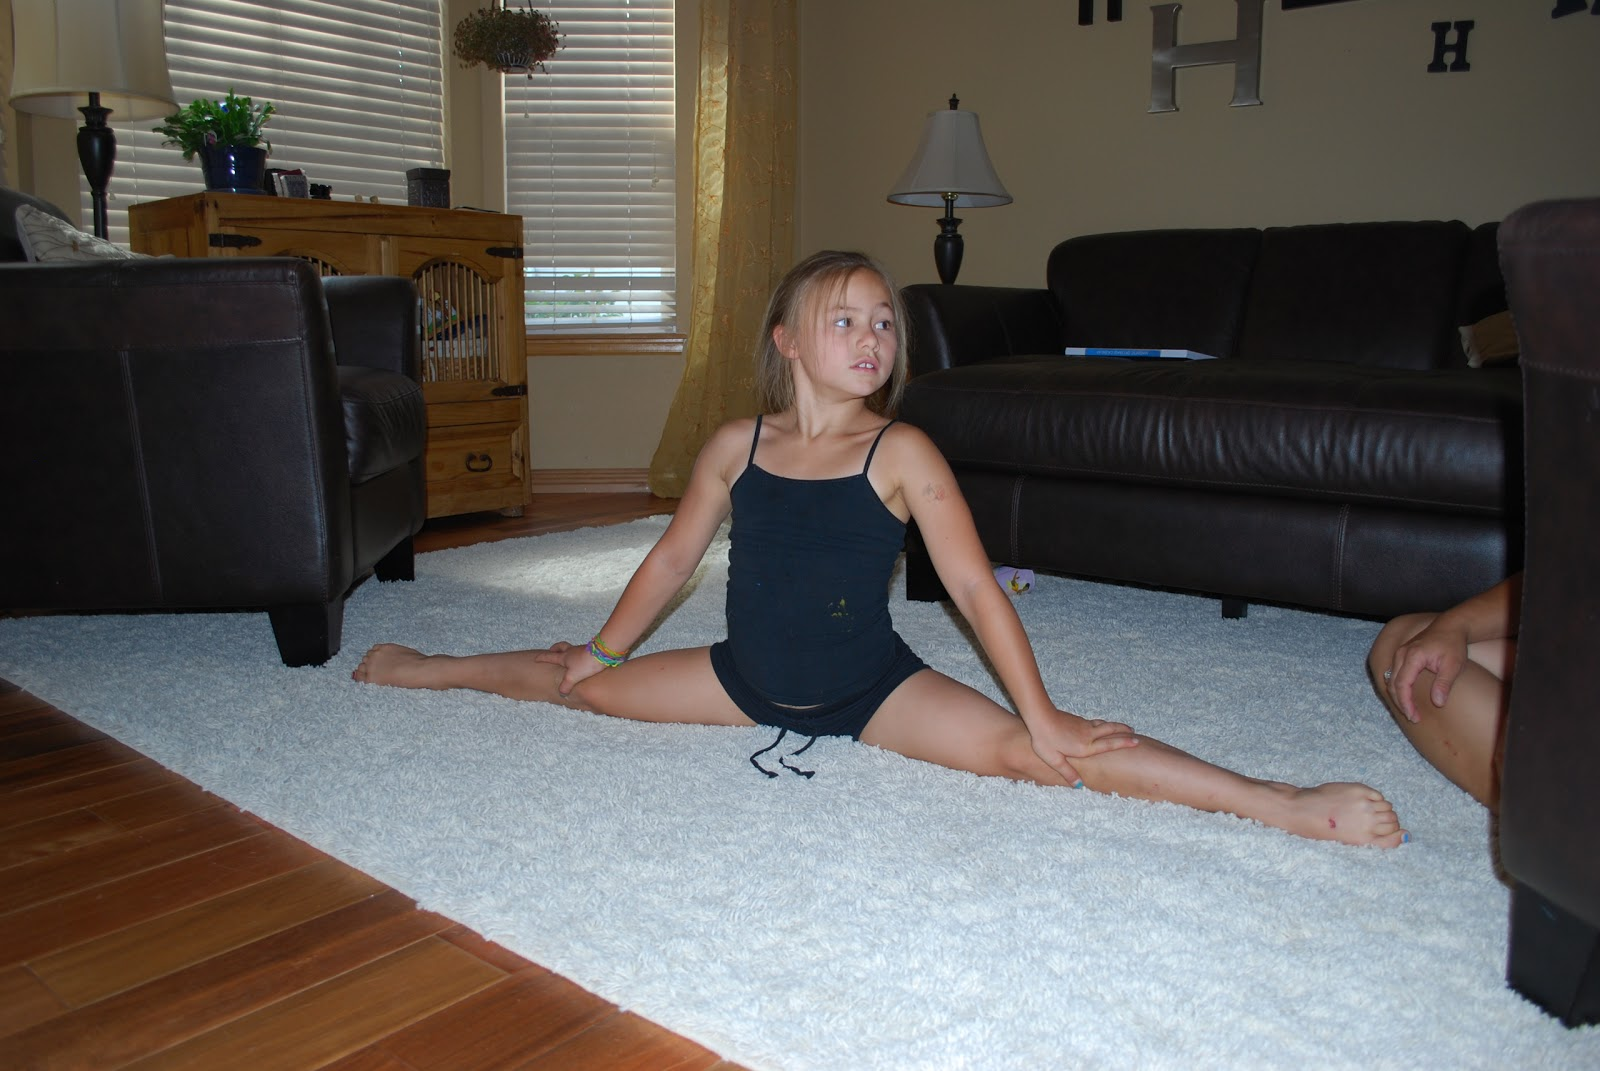 In the World of 8-year old gymnastics . . .